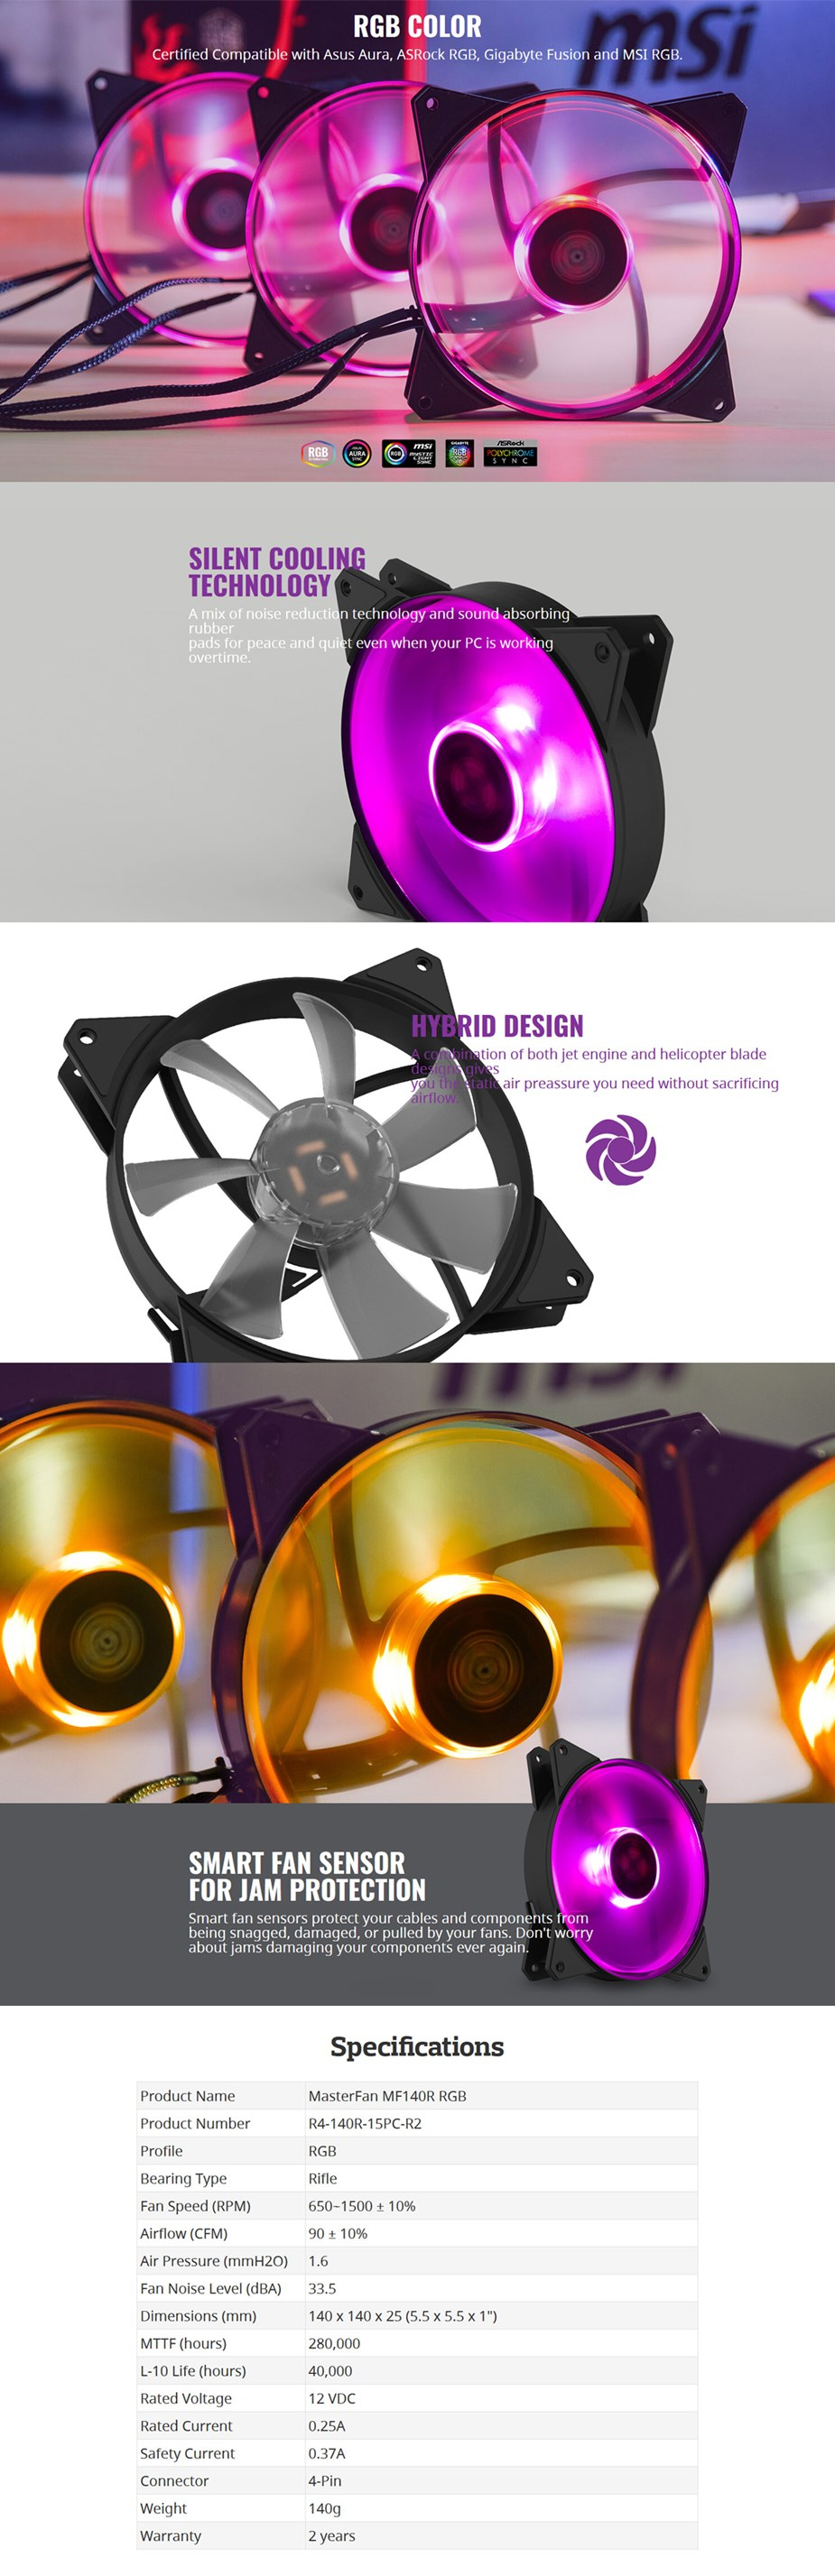 Cooler Master MasterFan MF140R RGB 140mm Fan - Desktop Overview 1